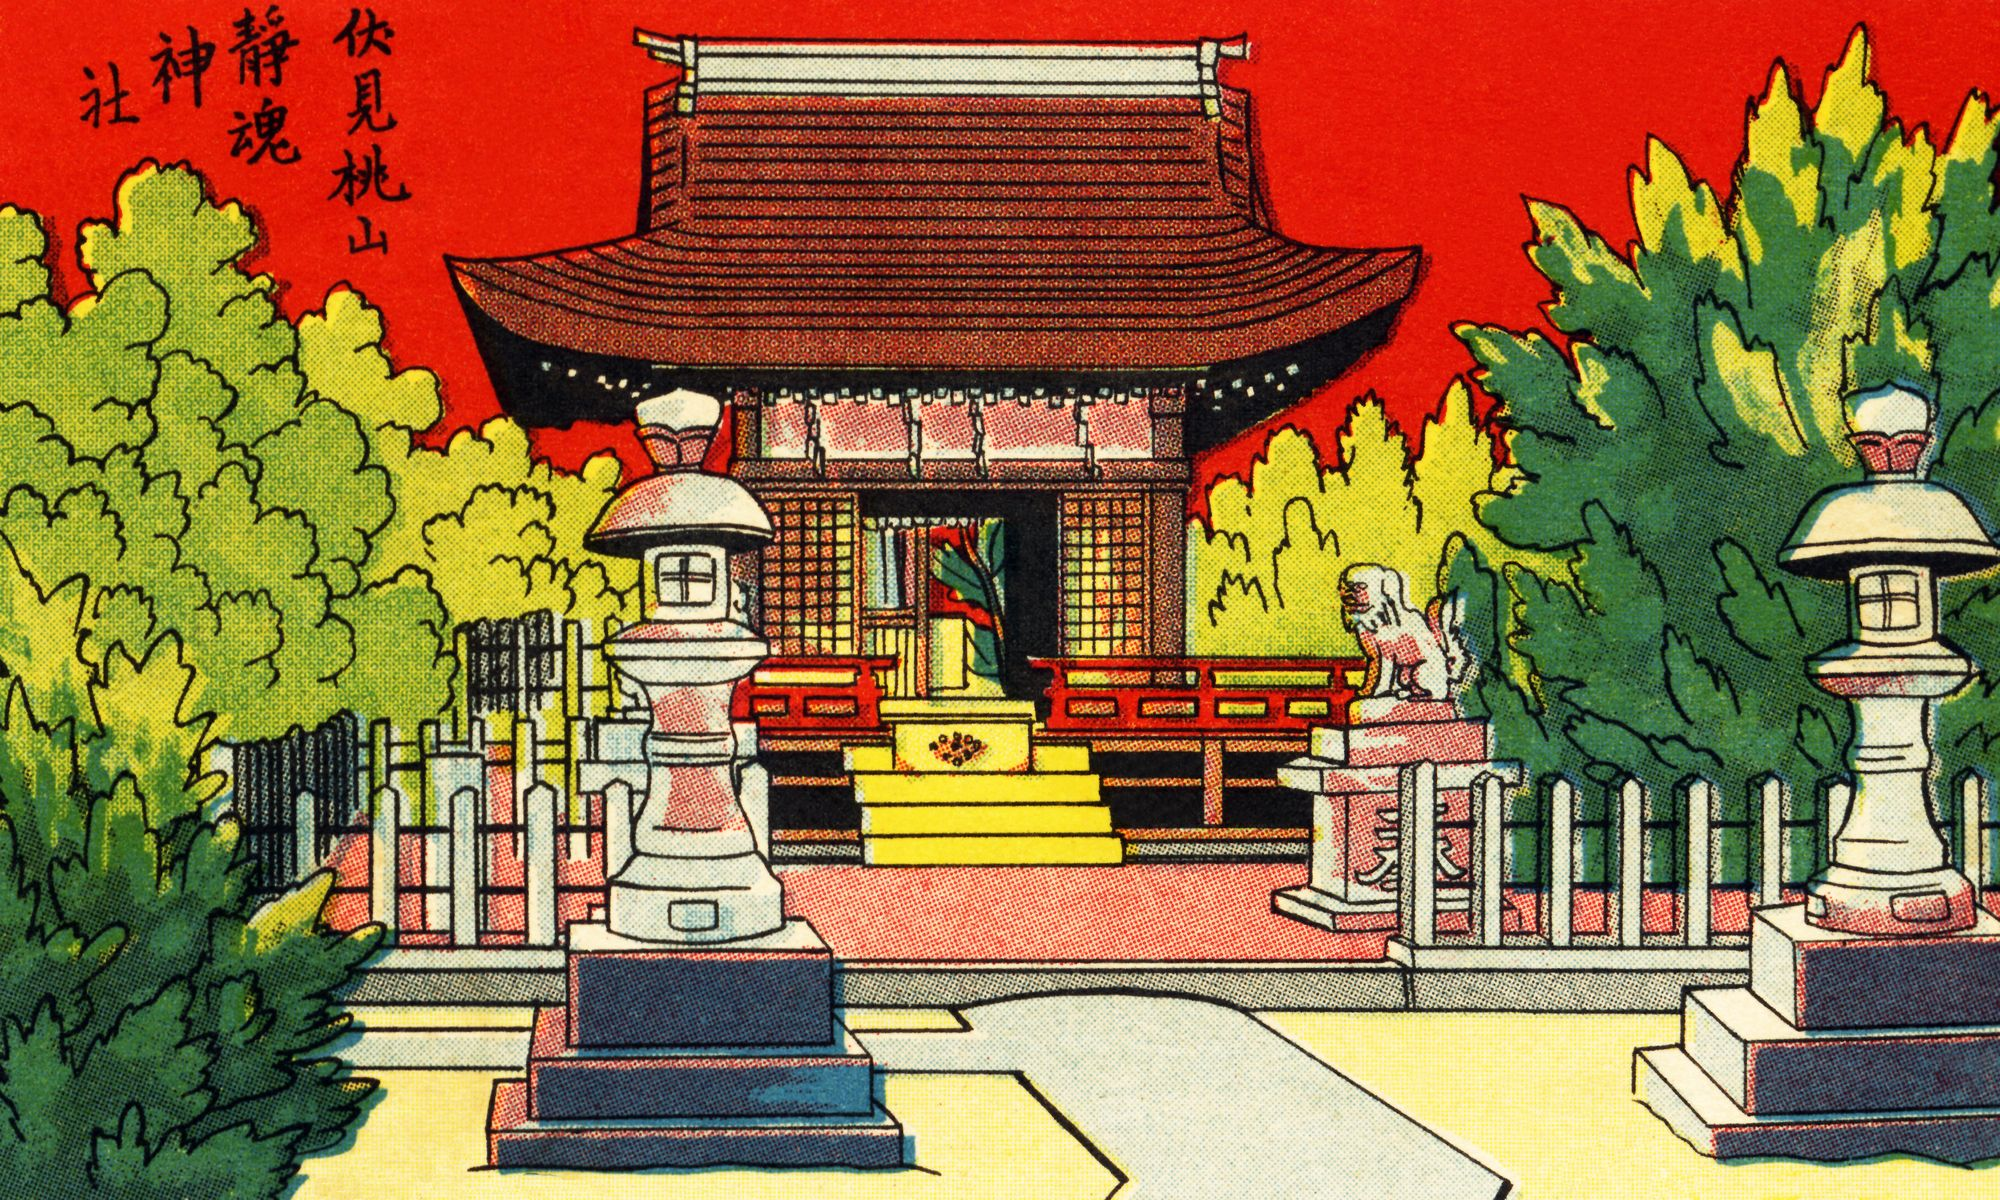 2000x1200 Illustration of a Japanese Shrine Wallpaper Mural | Wallsauce DK